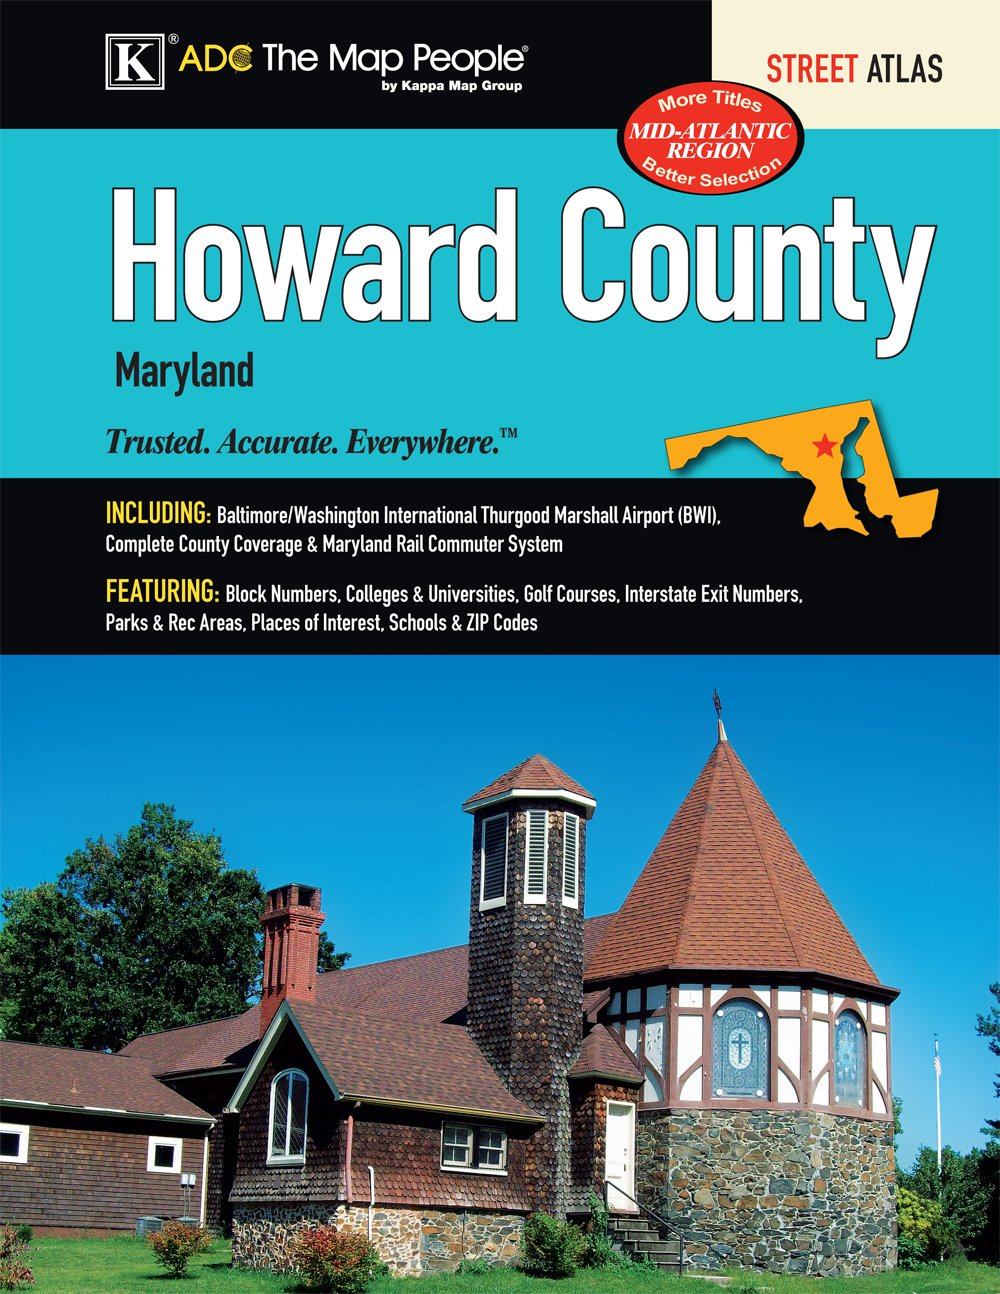 Howard County Md Zip Code Map.Howard County Md Street Atlas Kappa Map Group 9780762580200